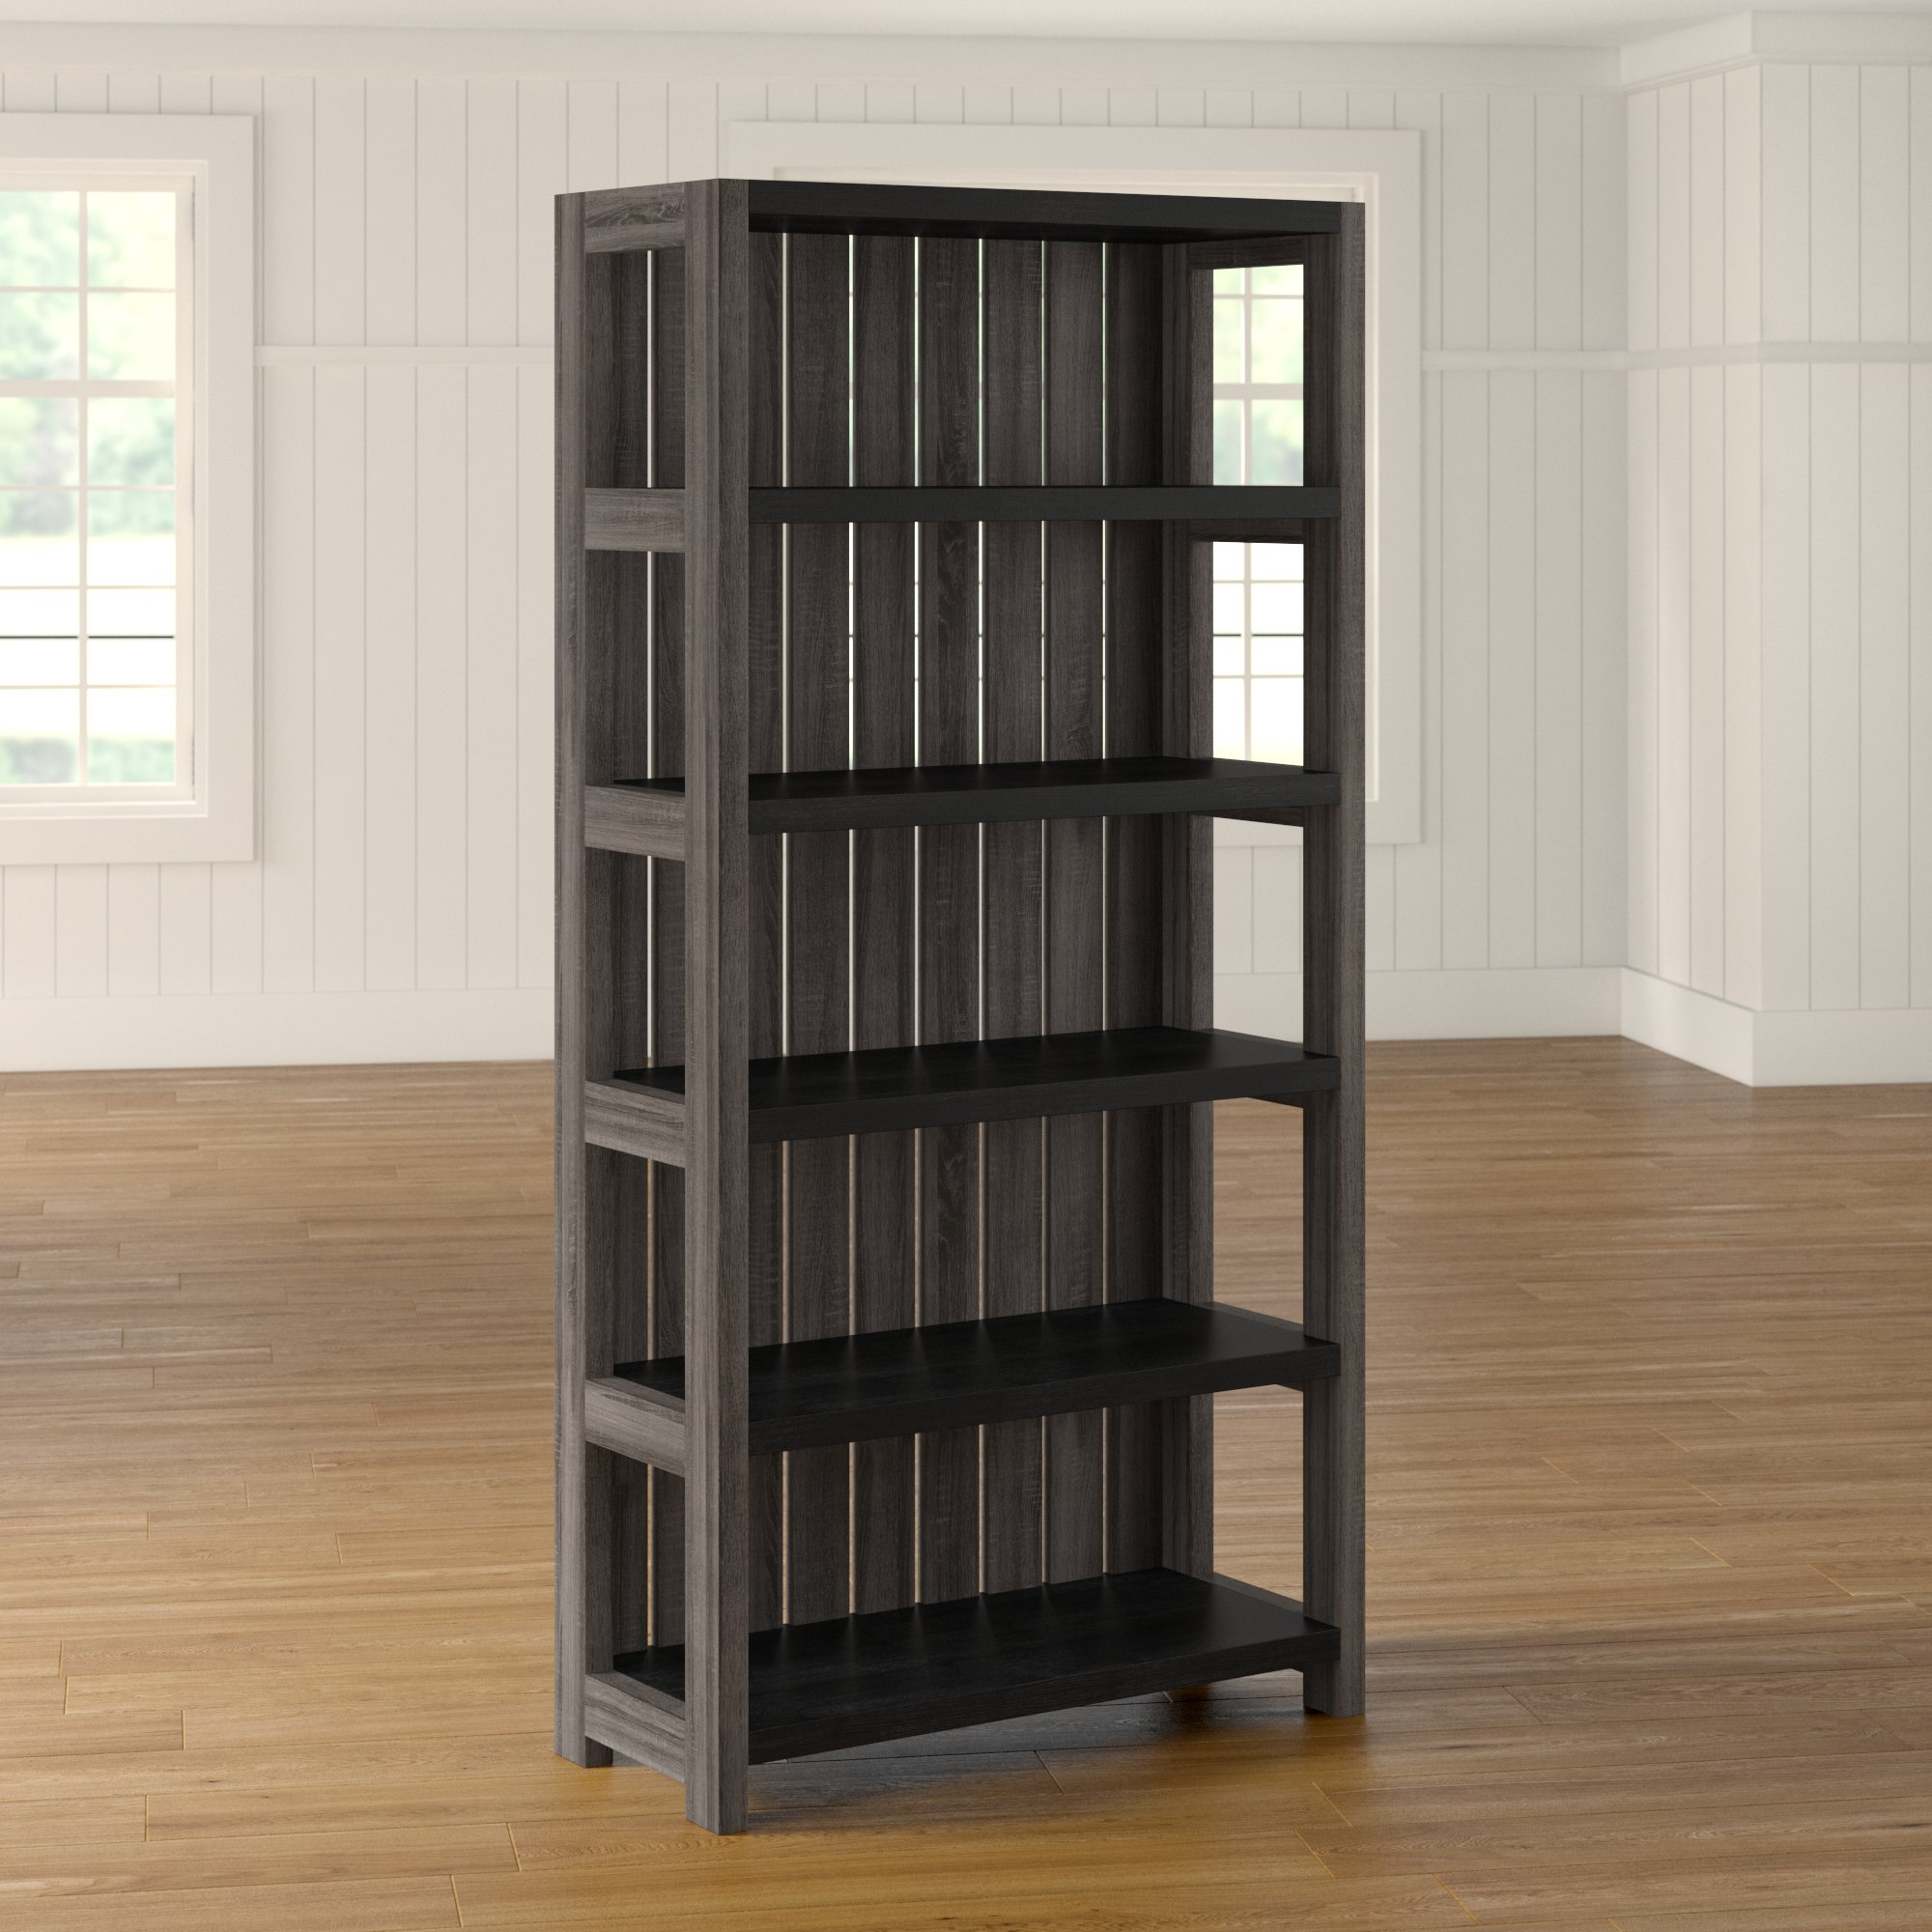 2019 Kelleia Standard Bookcase Throughout Moeller Standard Bookcases (View 1 of 20)